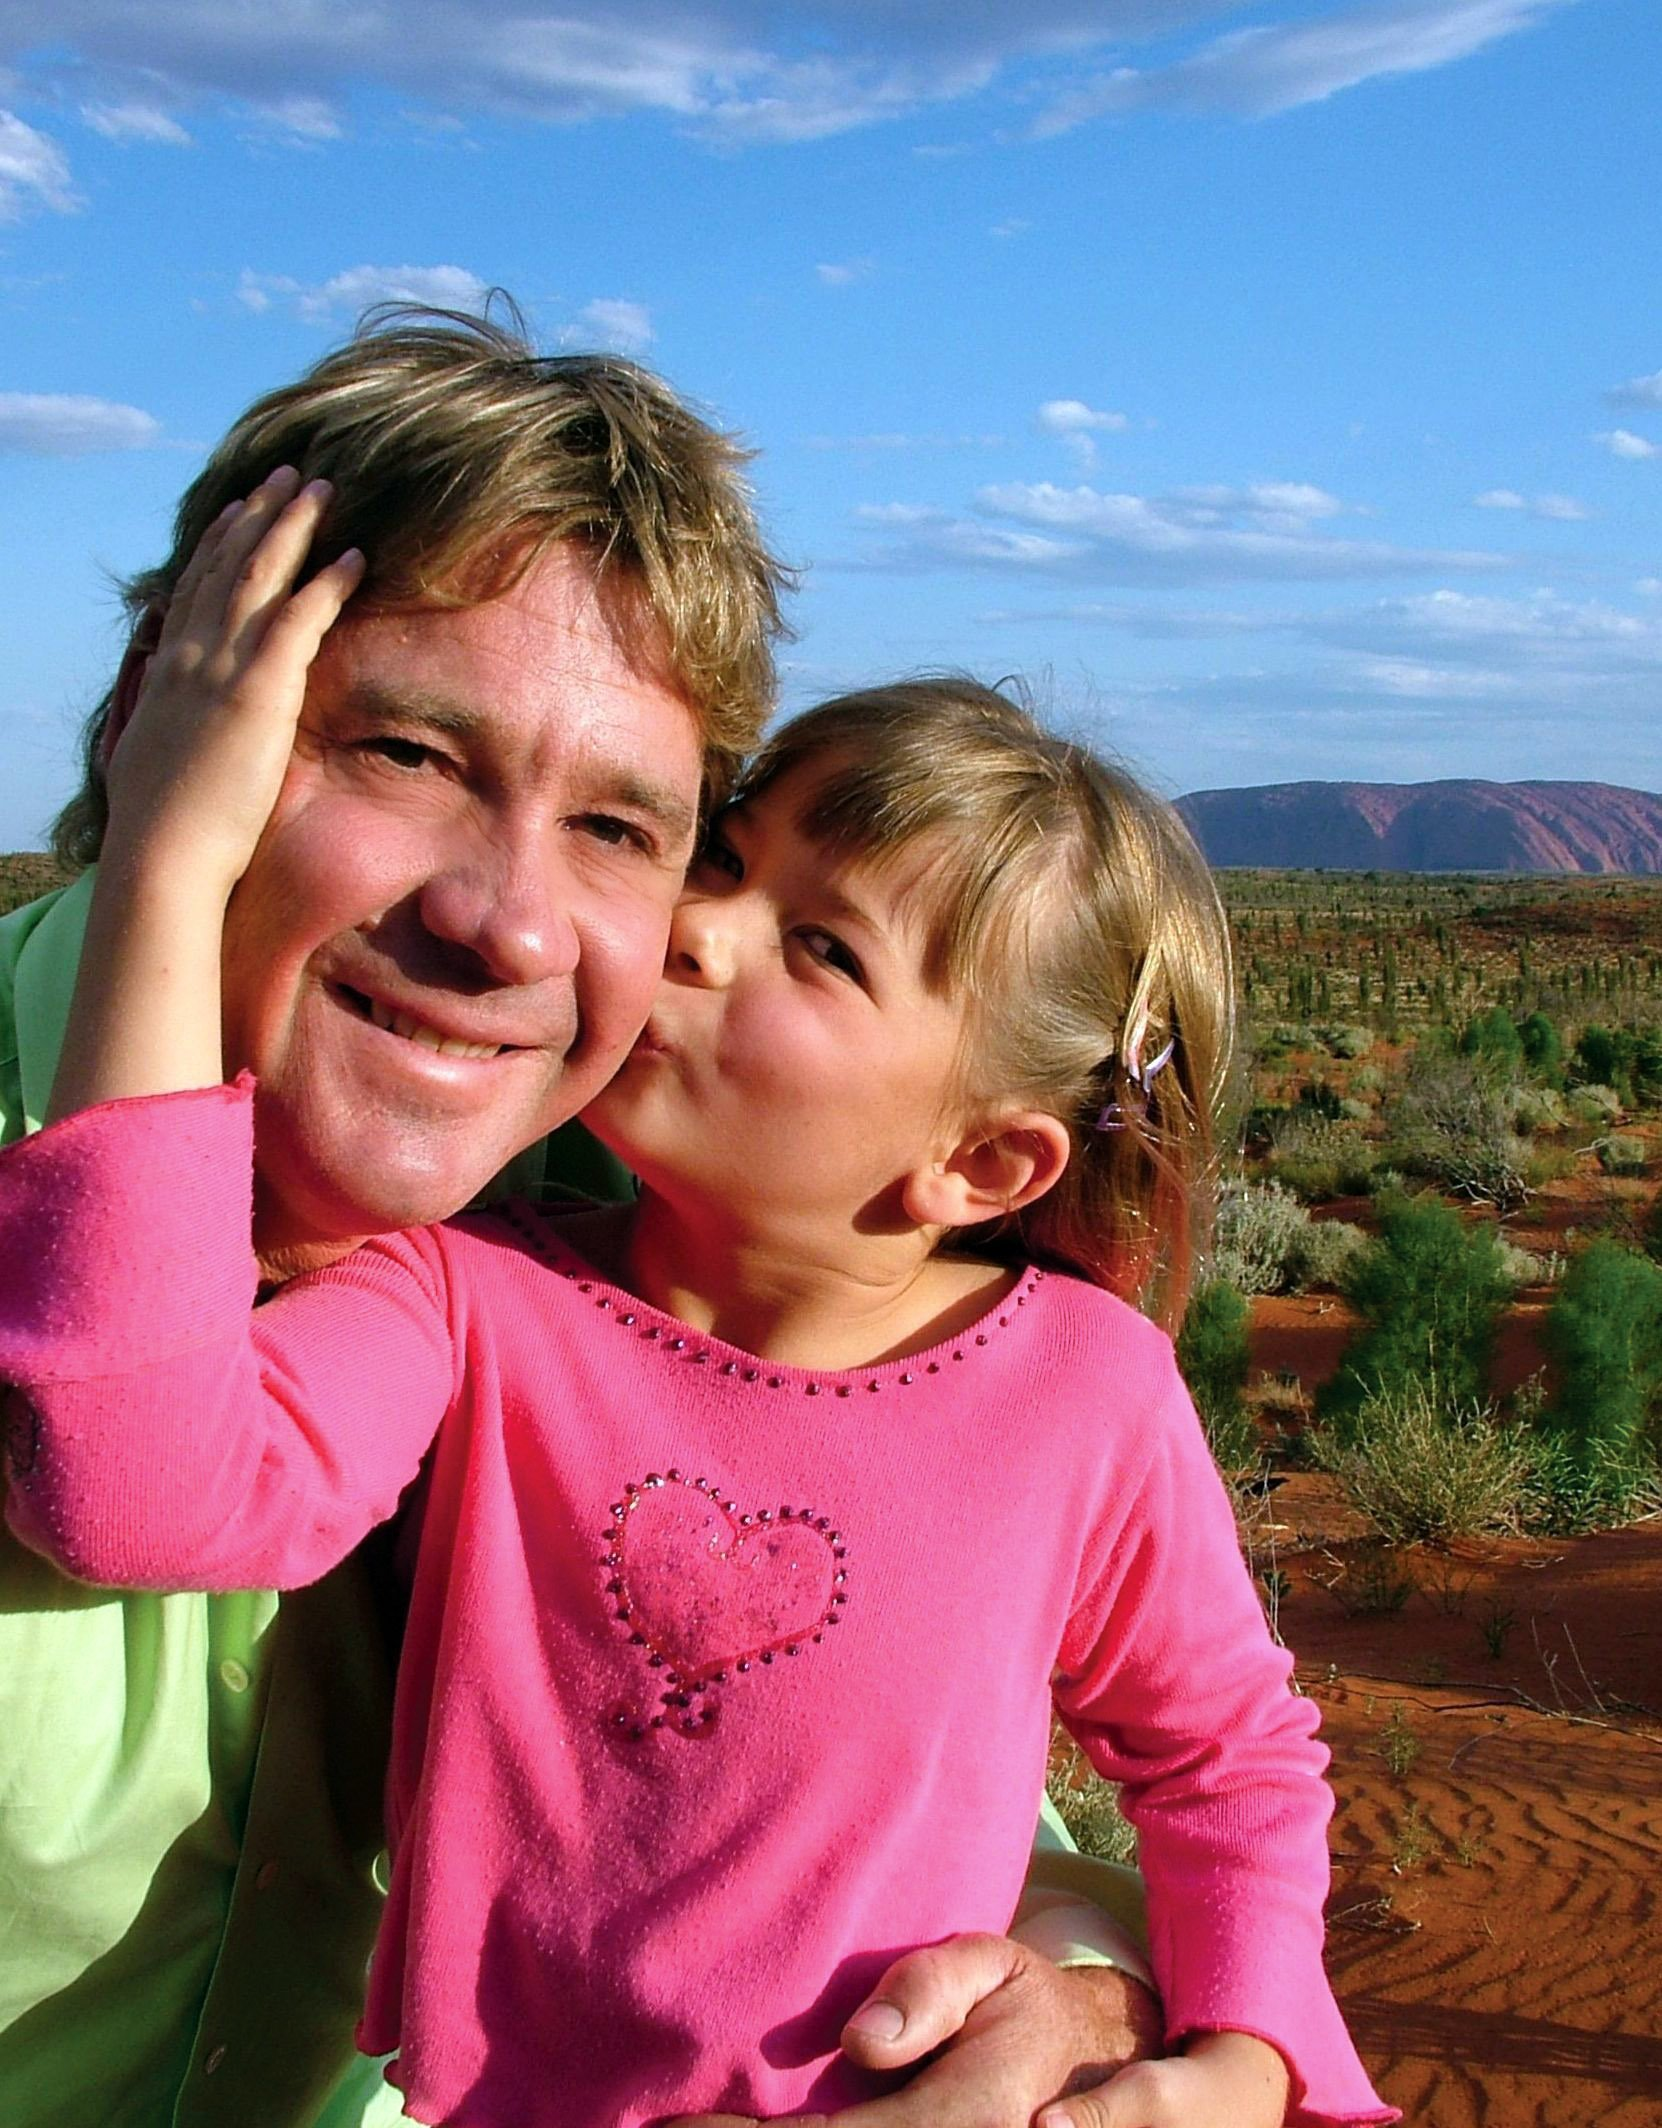 Steve Irwin poses with his daughter Bindi Irwin in Uluru, Australia | Source: Getty Images